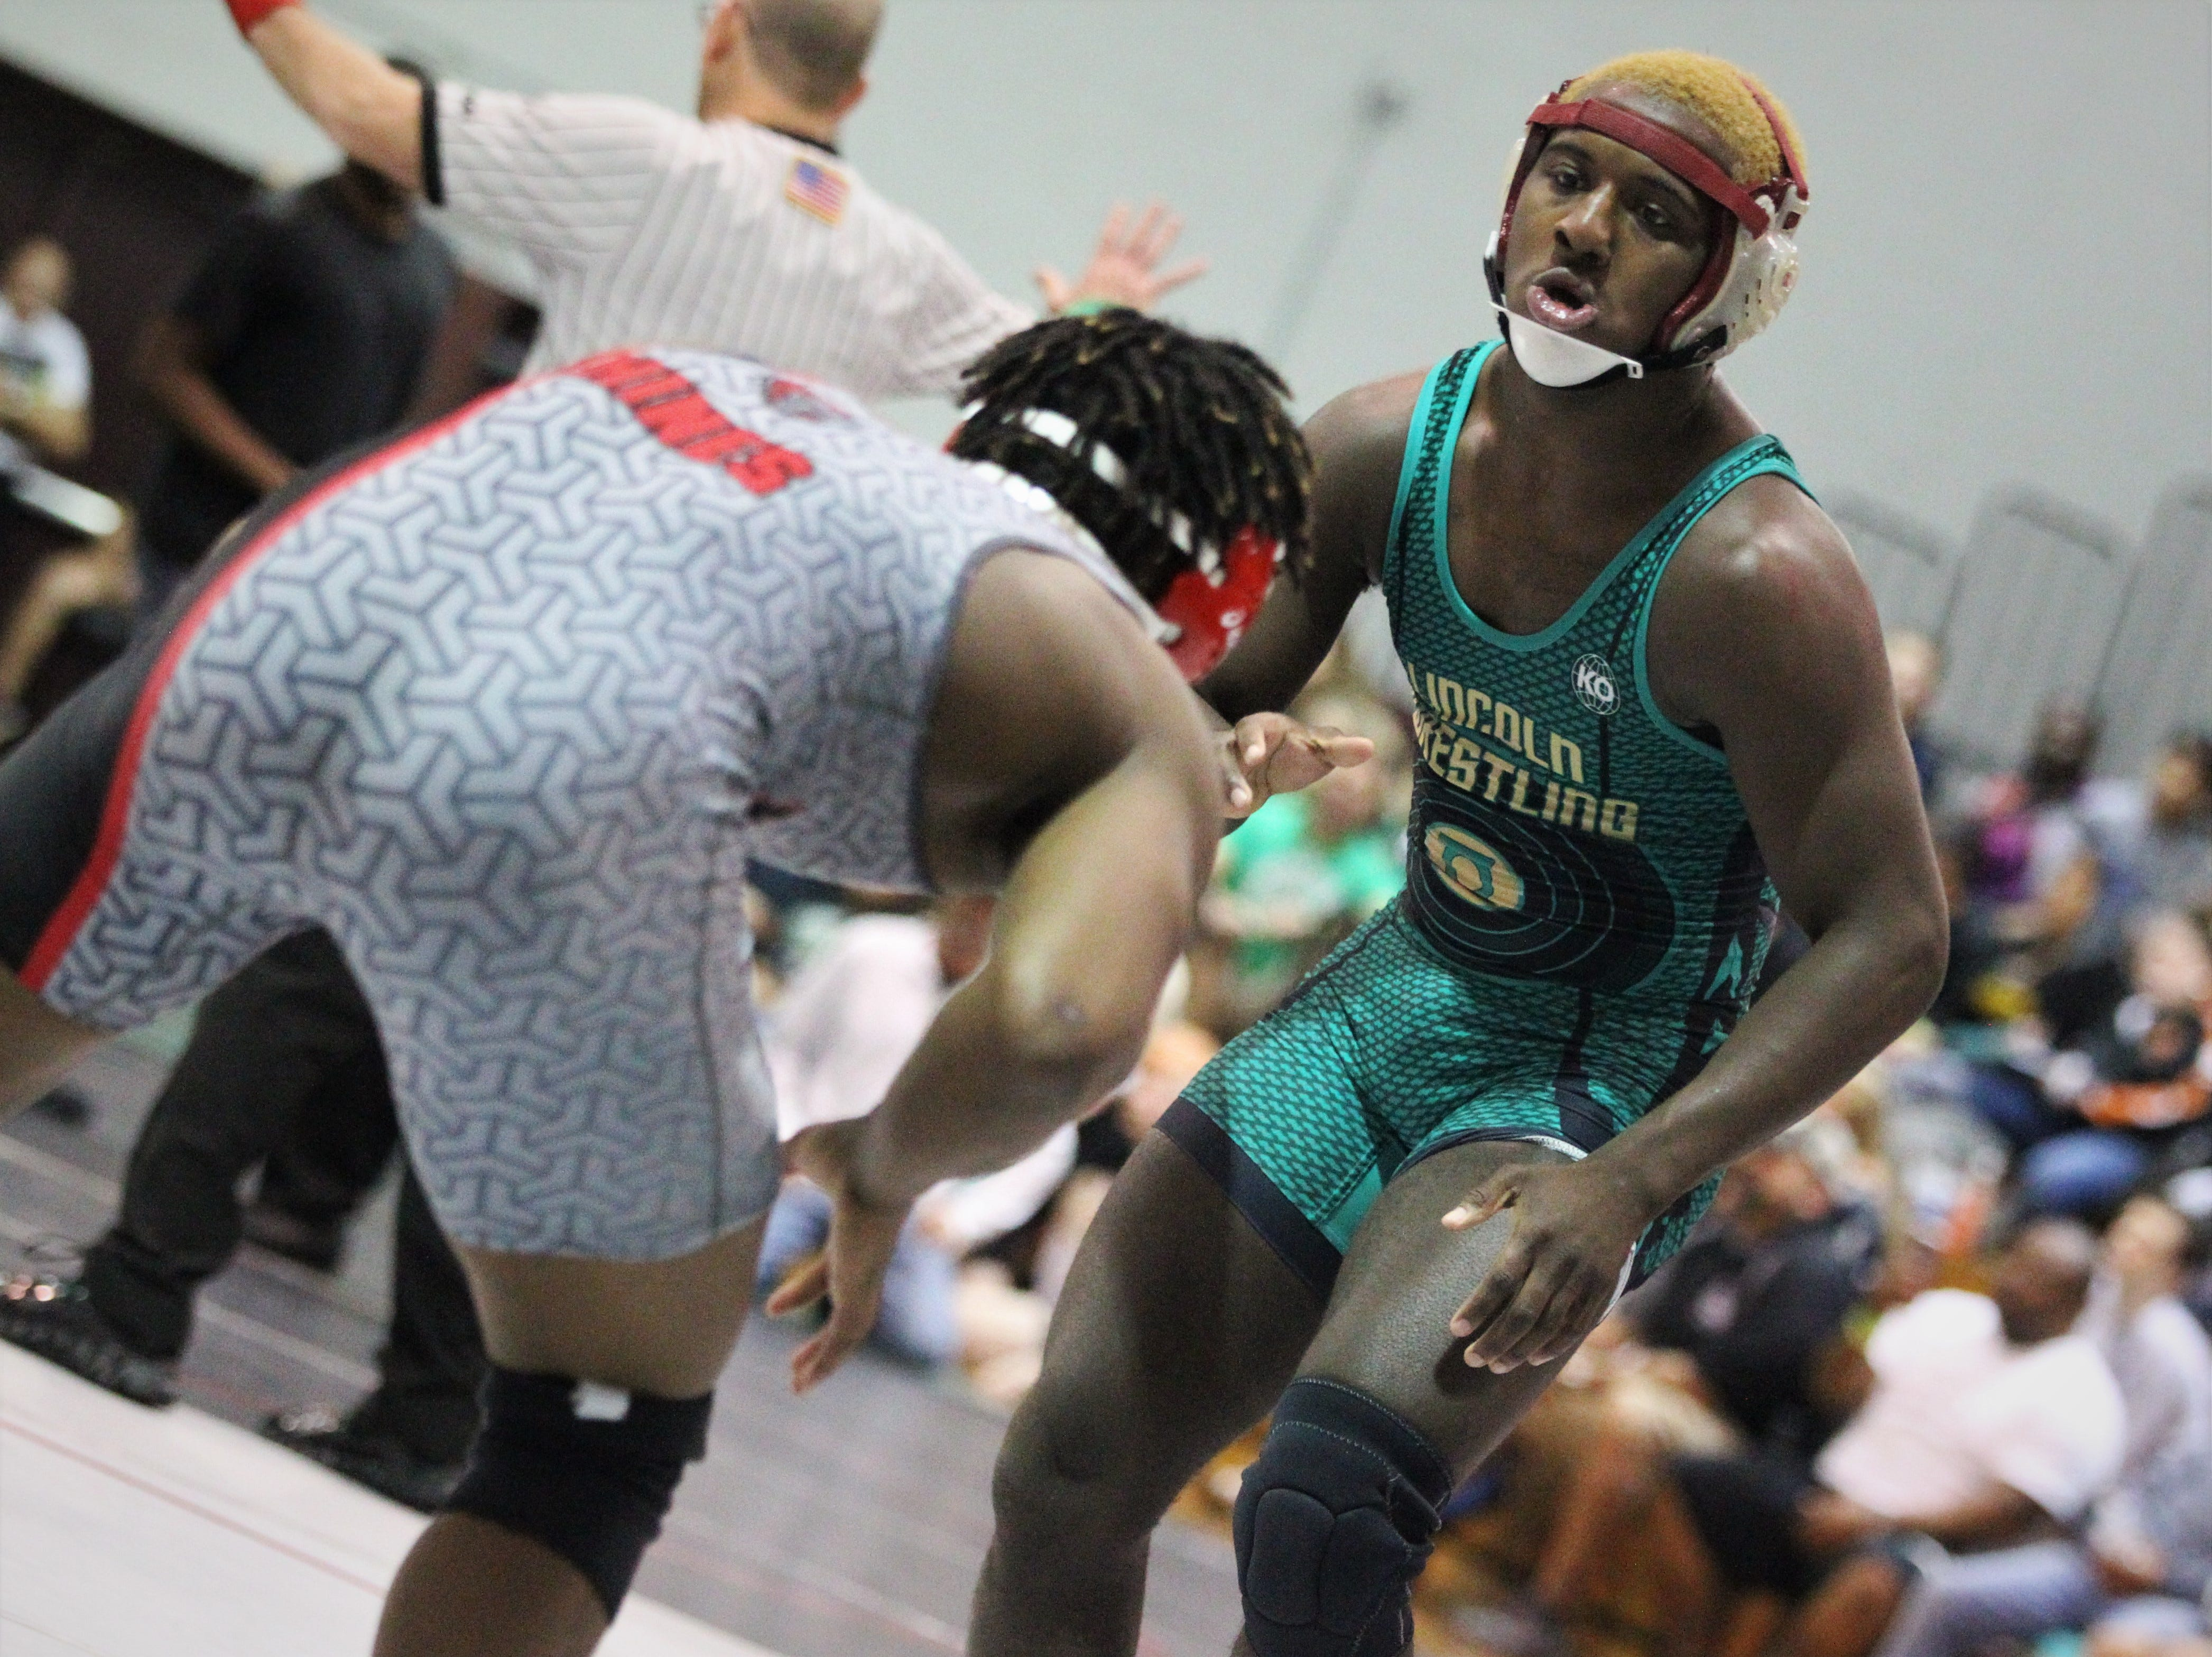 Lincoln senior Tony Davis wrestles during a 160-pound semifinal match at the Region 1-2A wrestling tournament at Chiles on March 2, 2019.